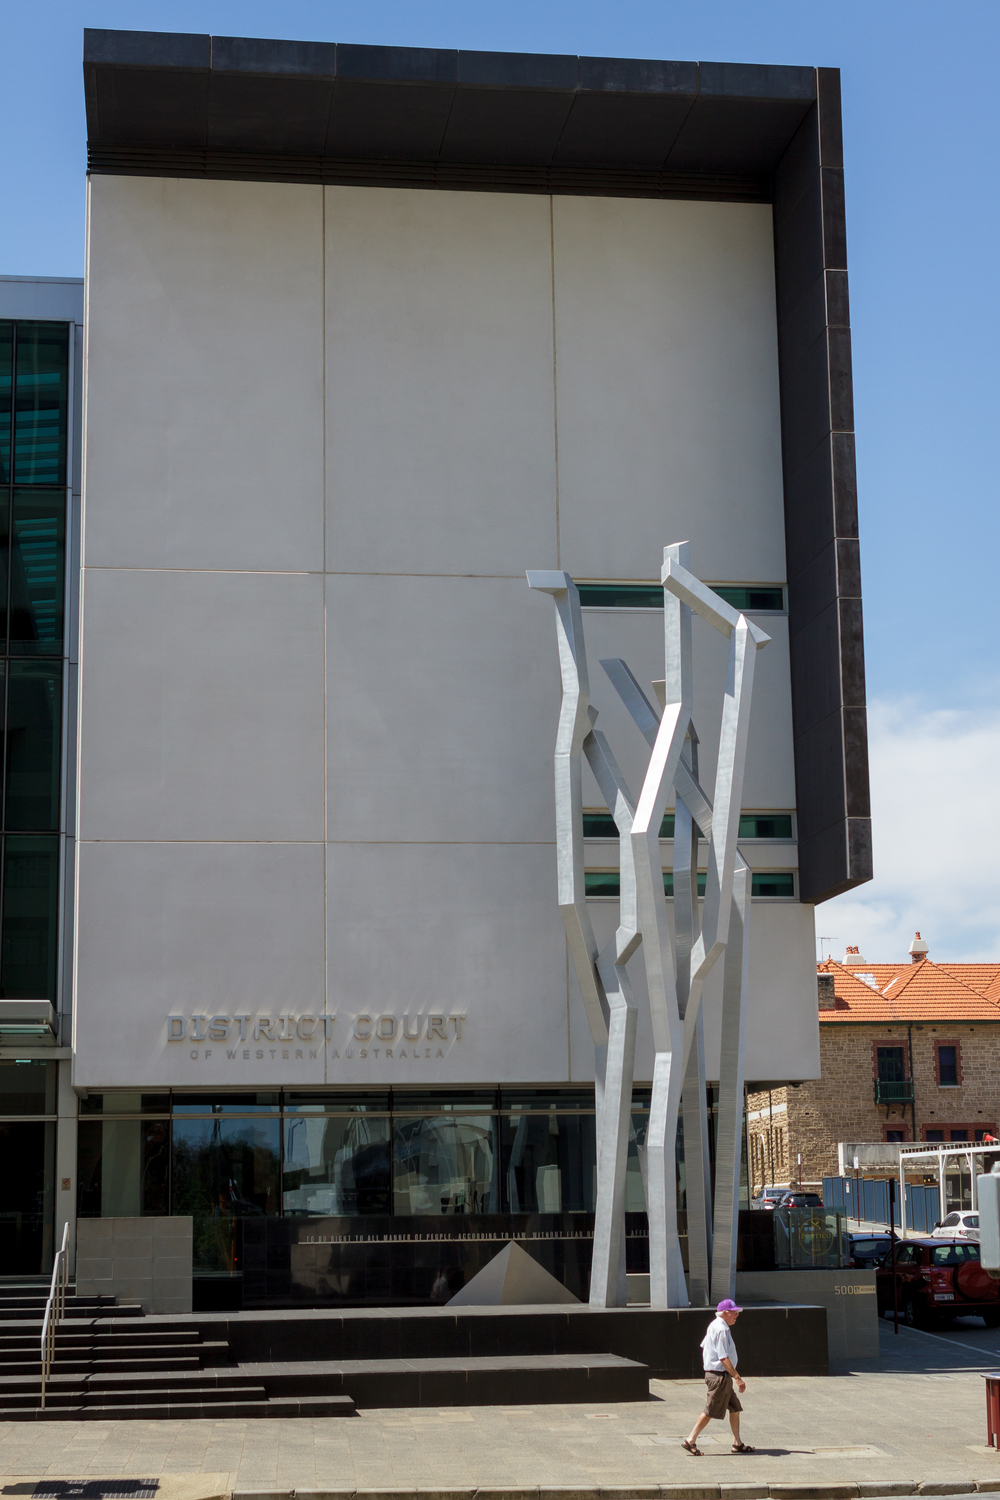 35 mm-20151129-135520-Perth Streets District Court.jpg